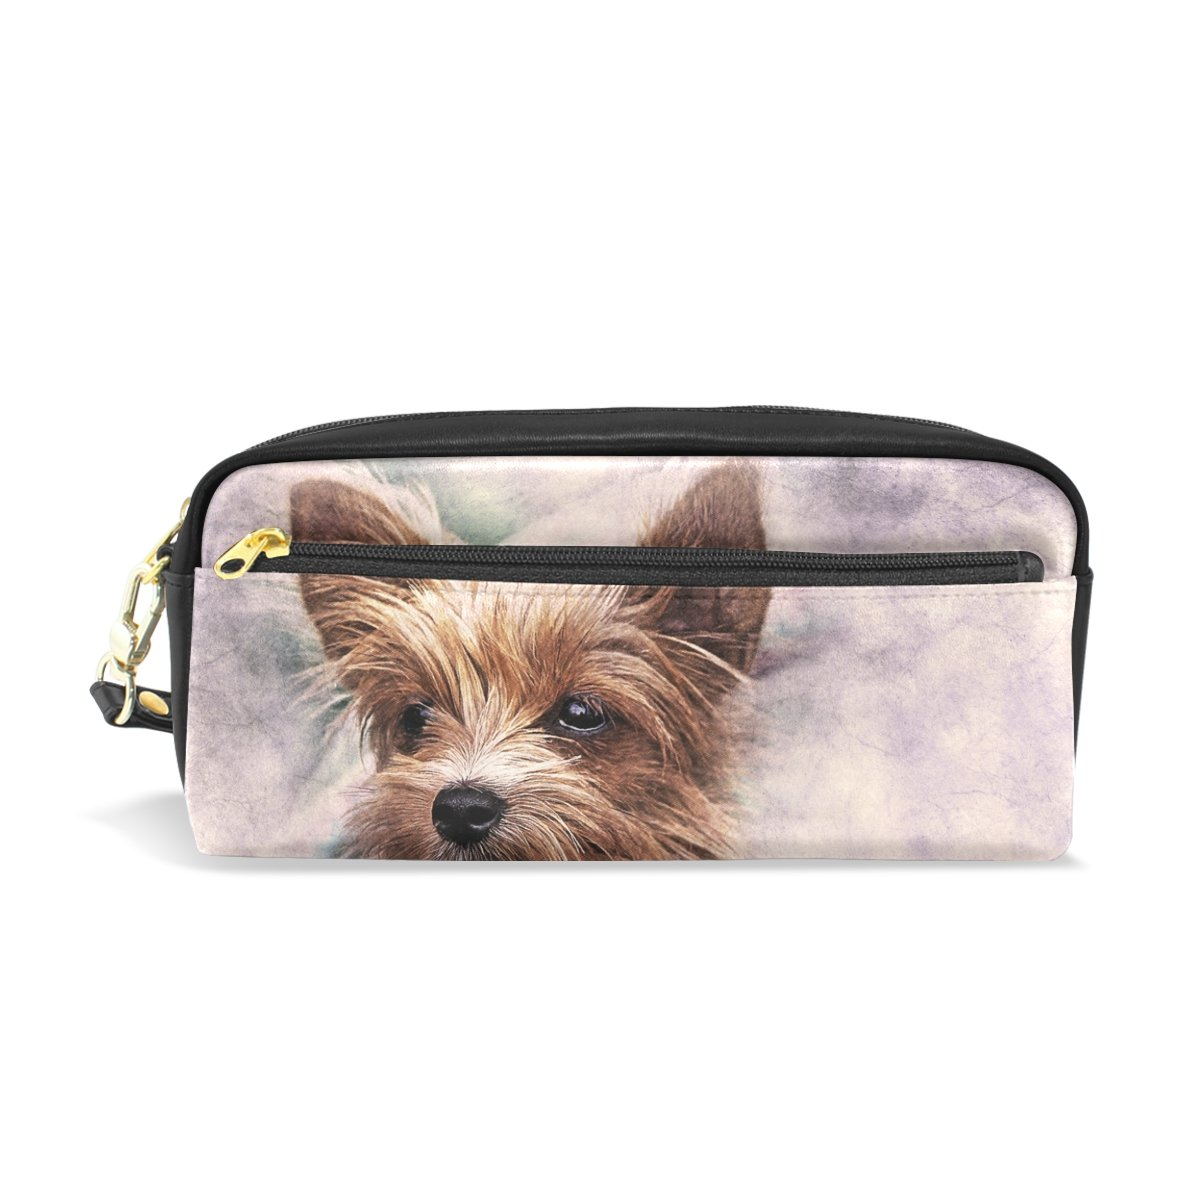 Animal Dog Leather Pen Pencil Case Bag Students Stationery Zipper Pouch School Supplies Travel Makeup Cosmetics Bag